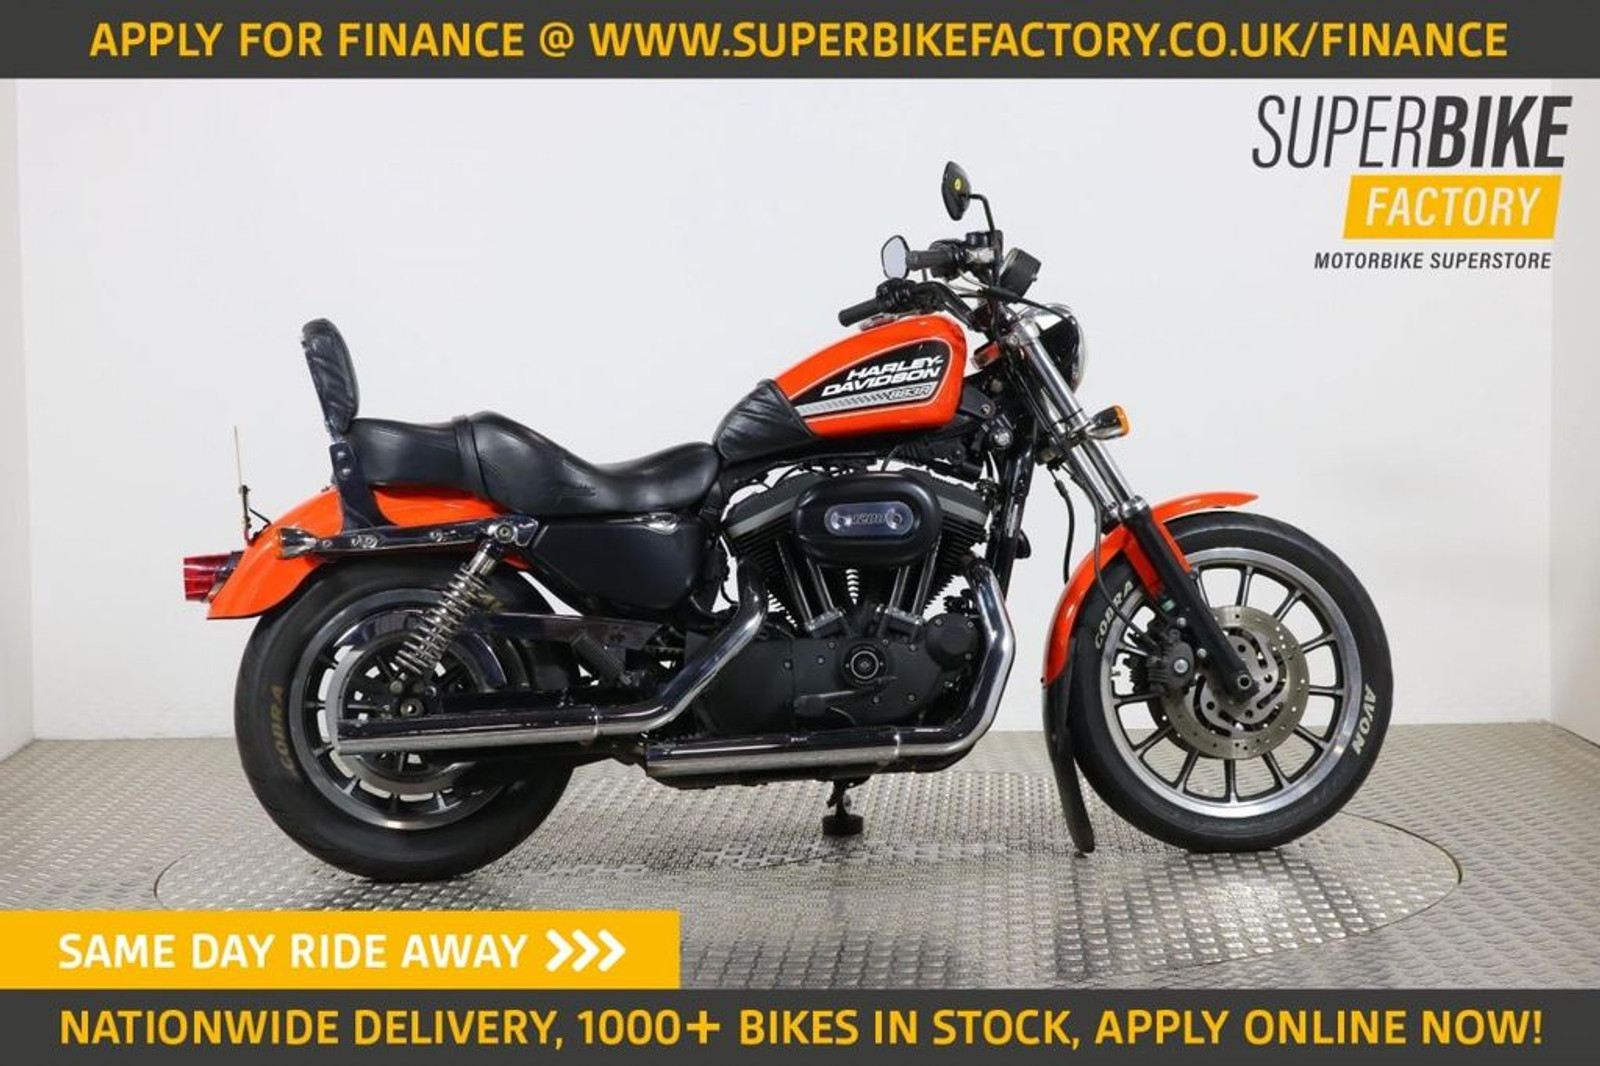 2010 Harley Davidson Sportster Xl 883 R Orange With 21600 Miles Used Motorbikes Dealer Macclesfield Cheshire The Superbike Factory